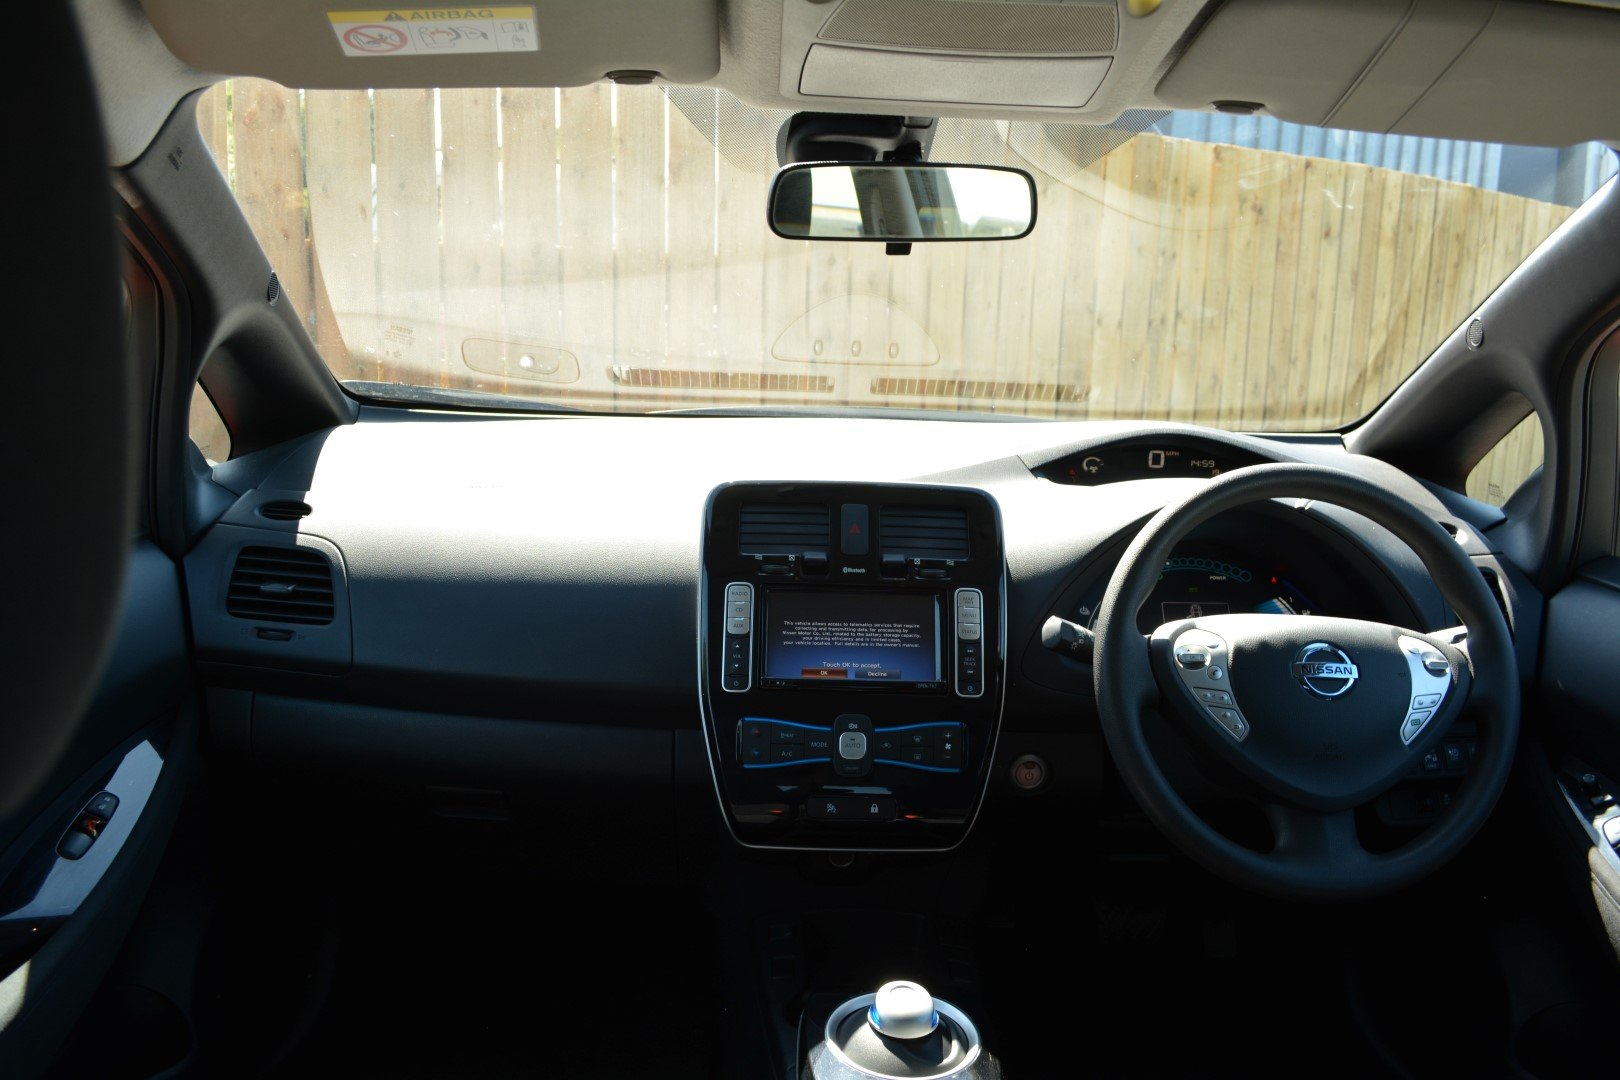 2016 2015 Nissan Leaf 24kwh Acenta 6.6kw Charger For Sale (picture 6 of 6)